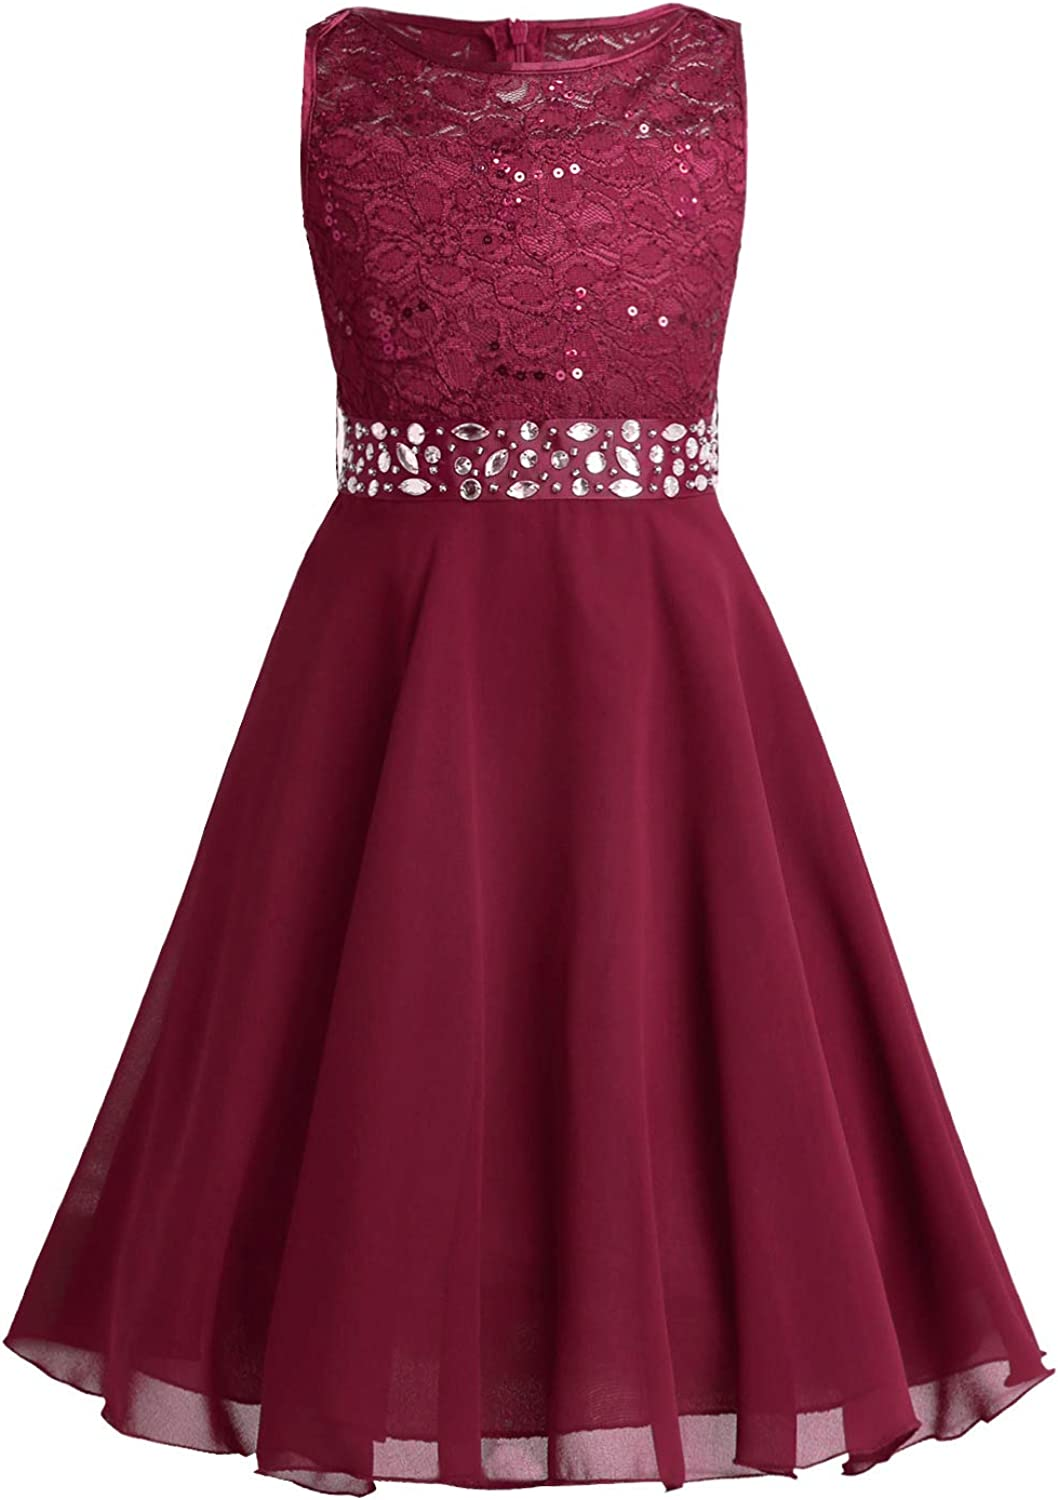 iEFiEL Girls Sequined Lace Flower Girl Dress Princess Pageant Wedding Bridesmaid Prom Party Chiffon Dress